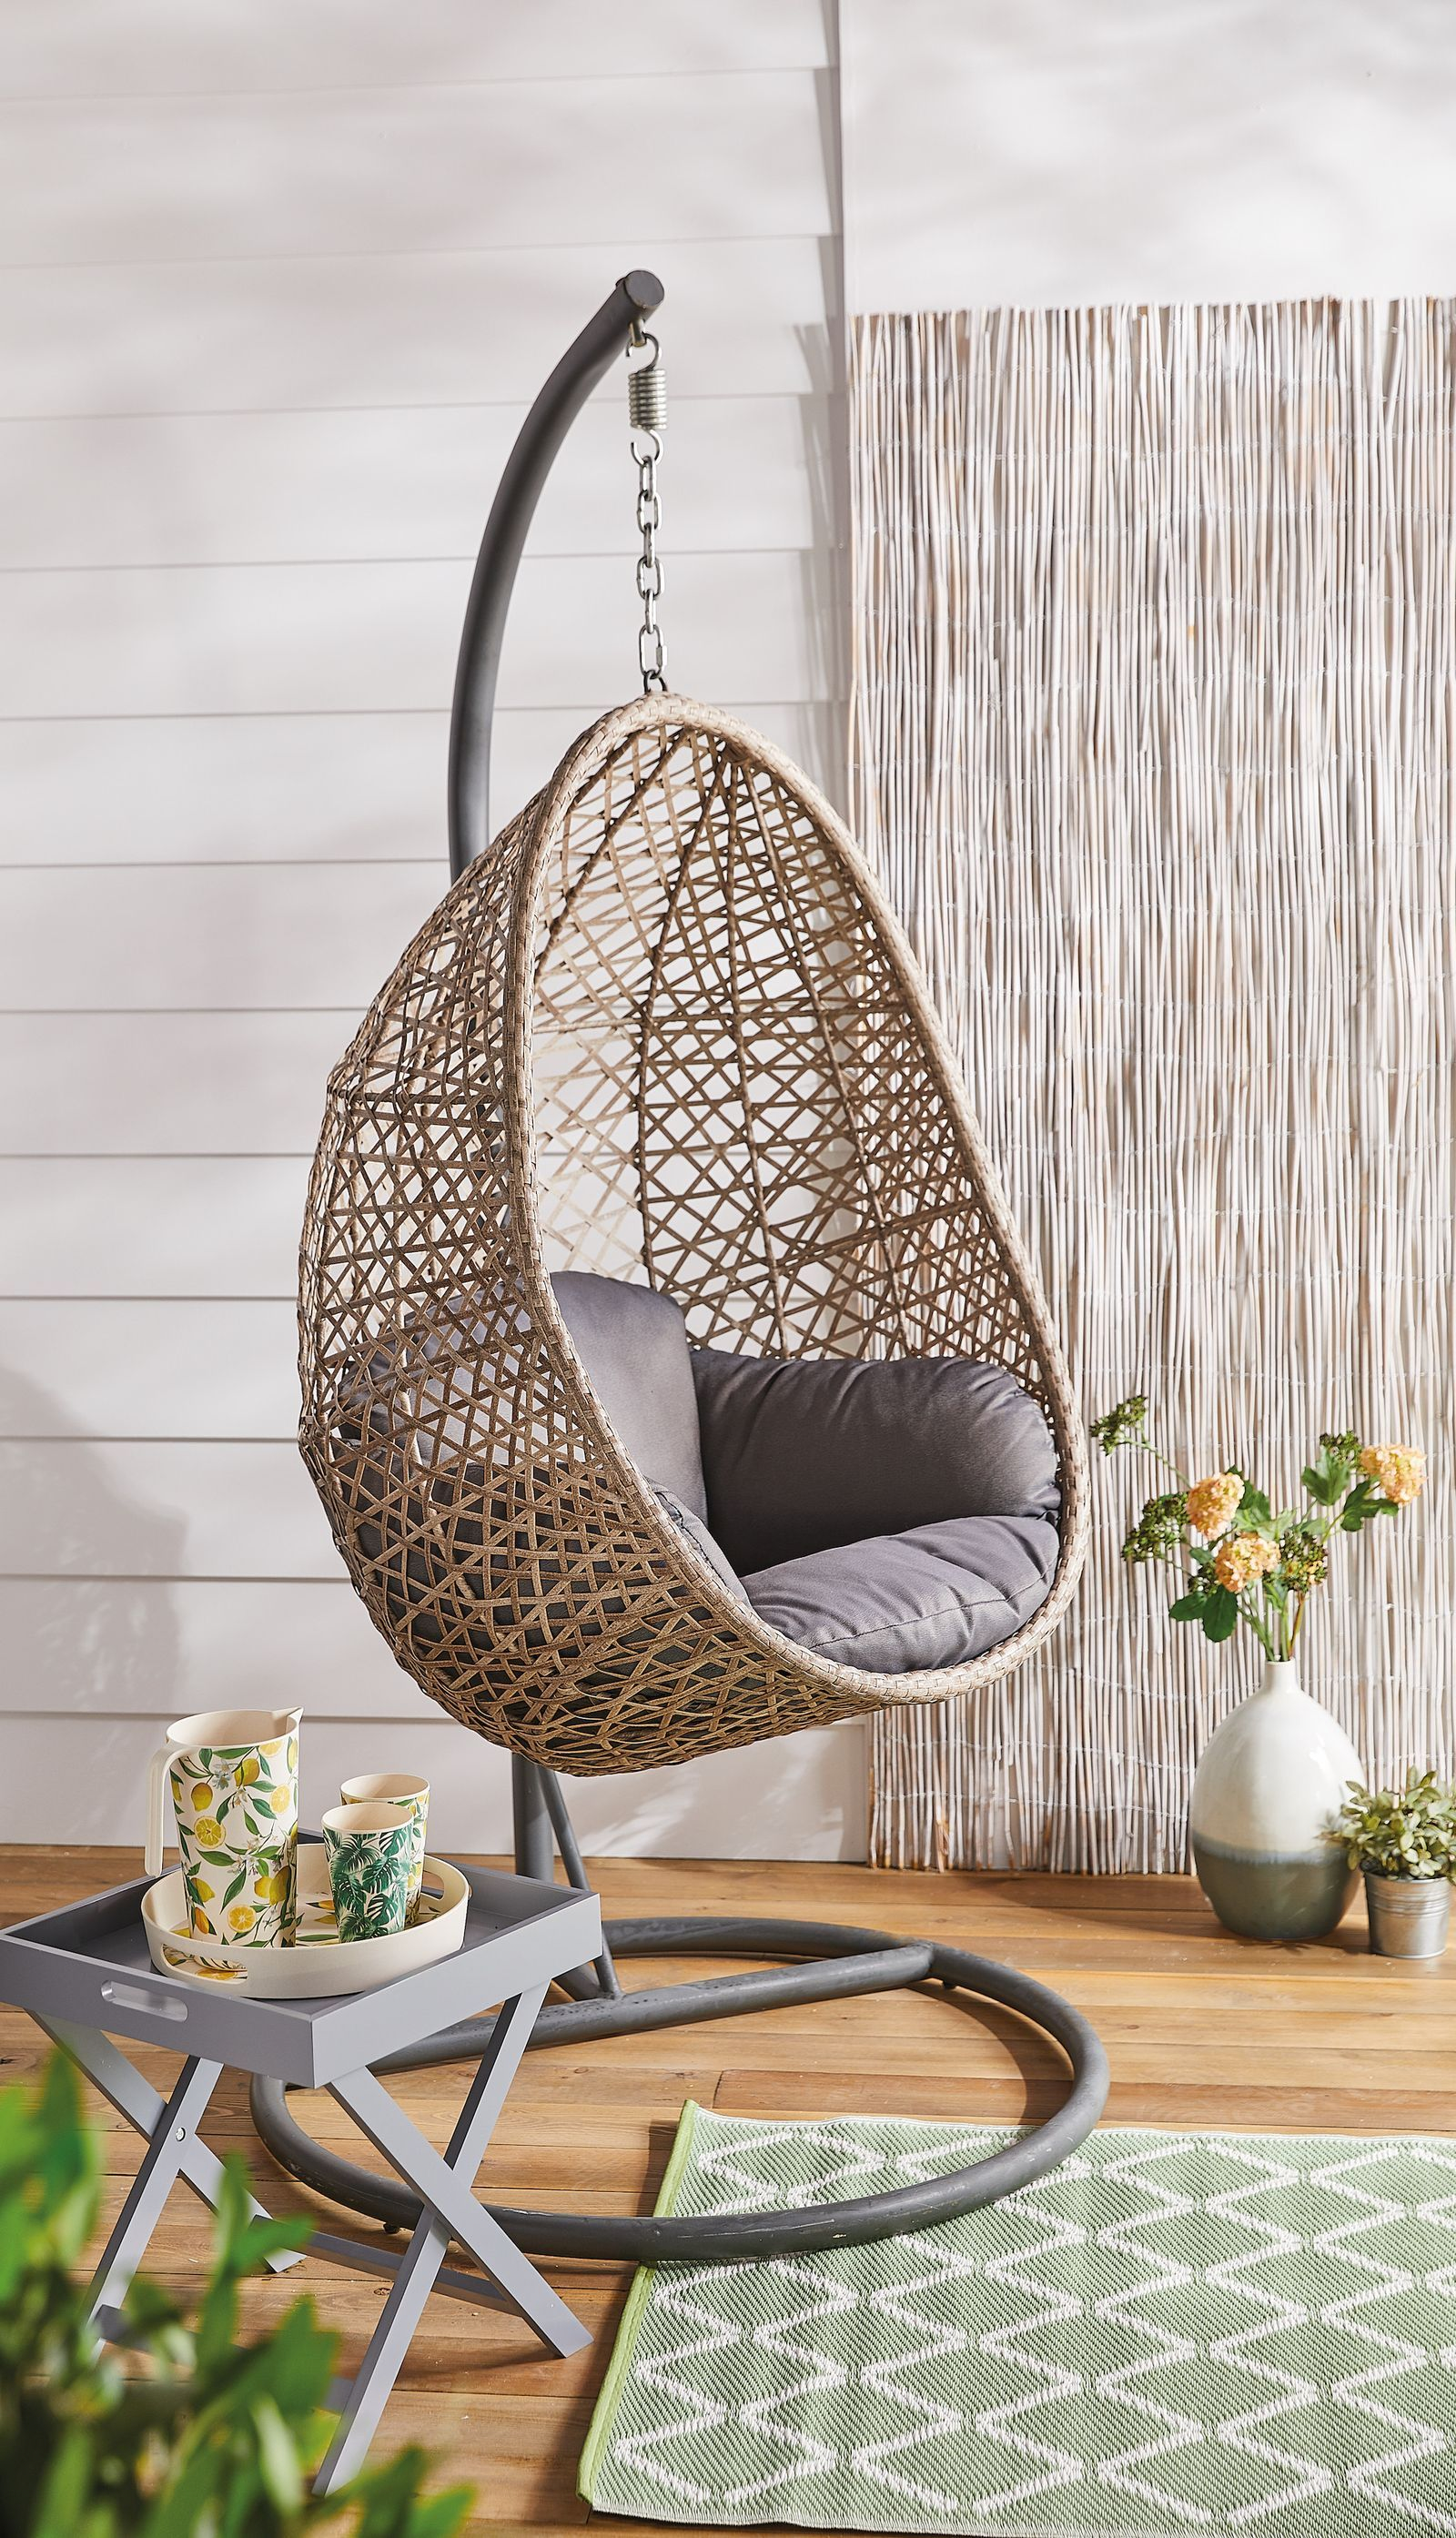 Aldi is selling a hanging egg chair Hanging egg chair